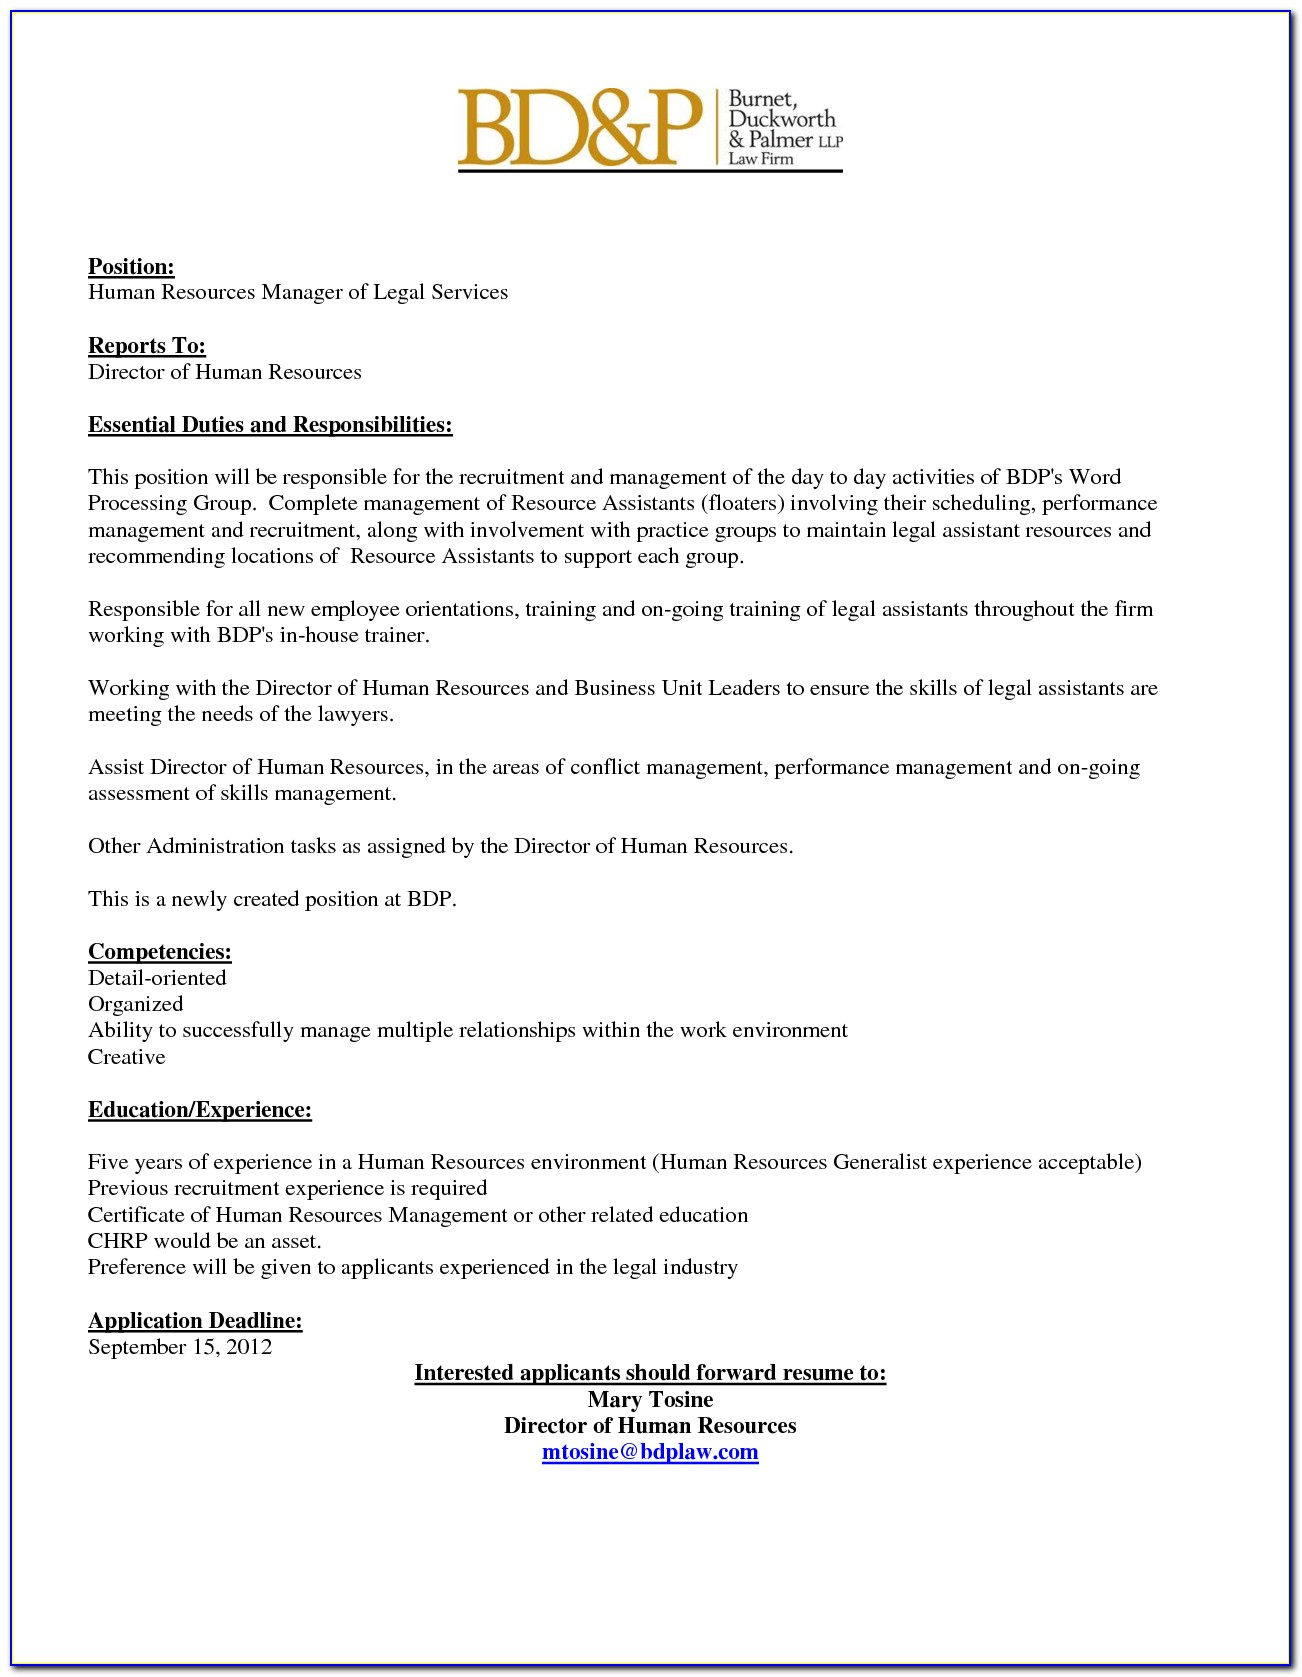 Job Advertisement Template Microsoft Word